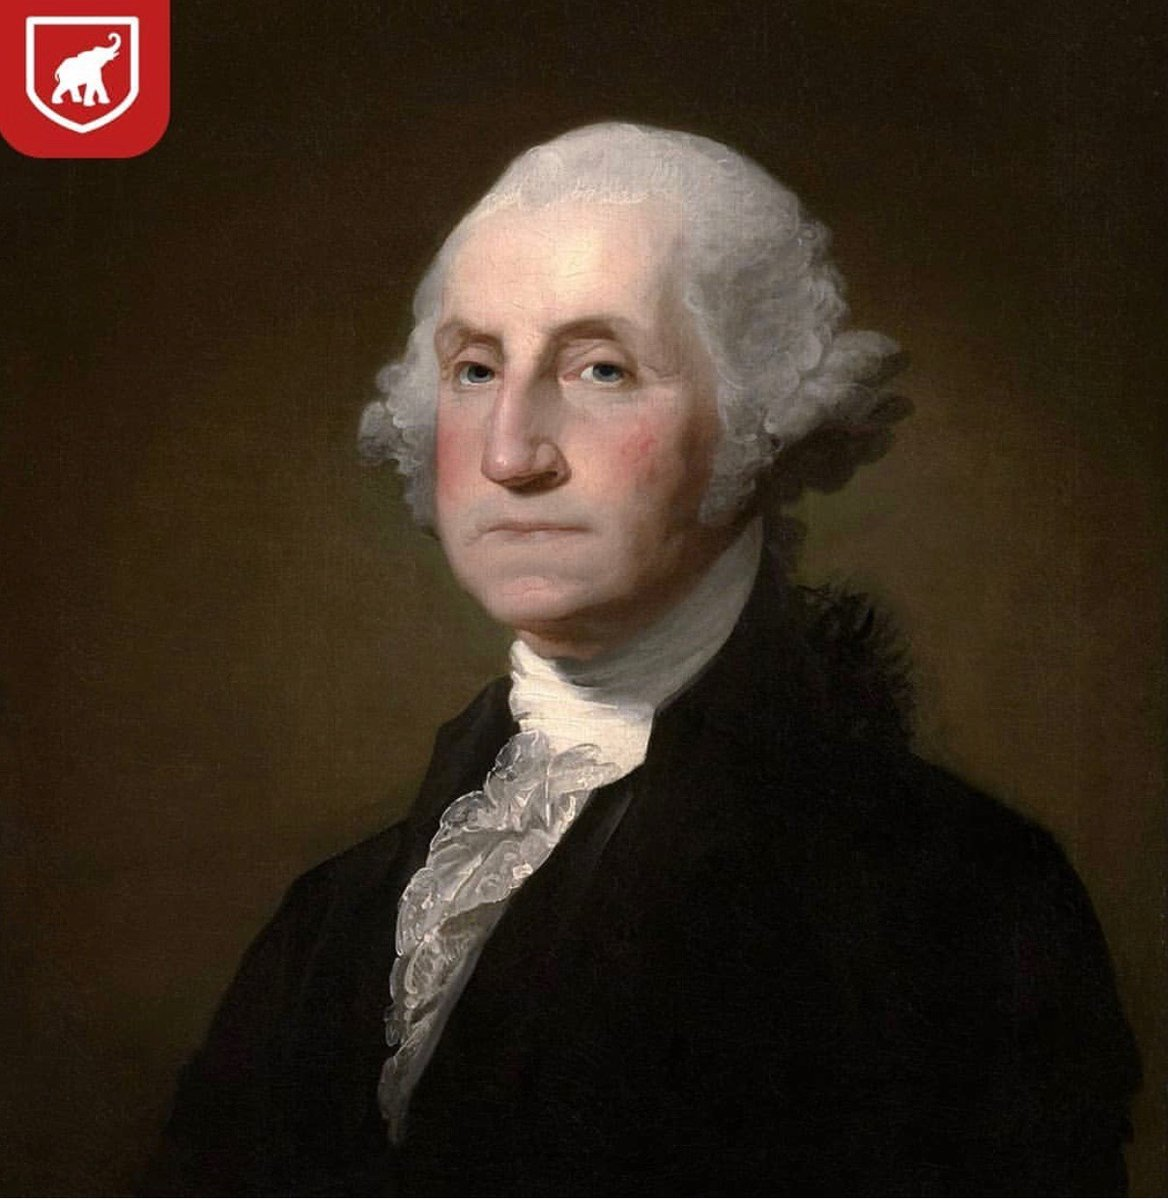 Happy birthday to our nations first president, George Washington!